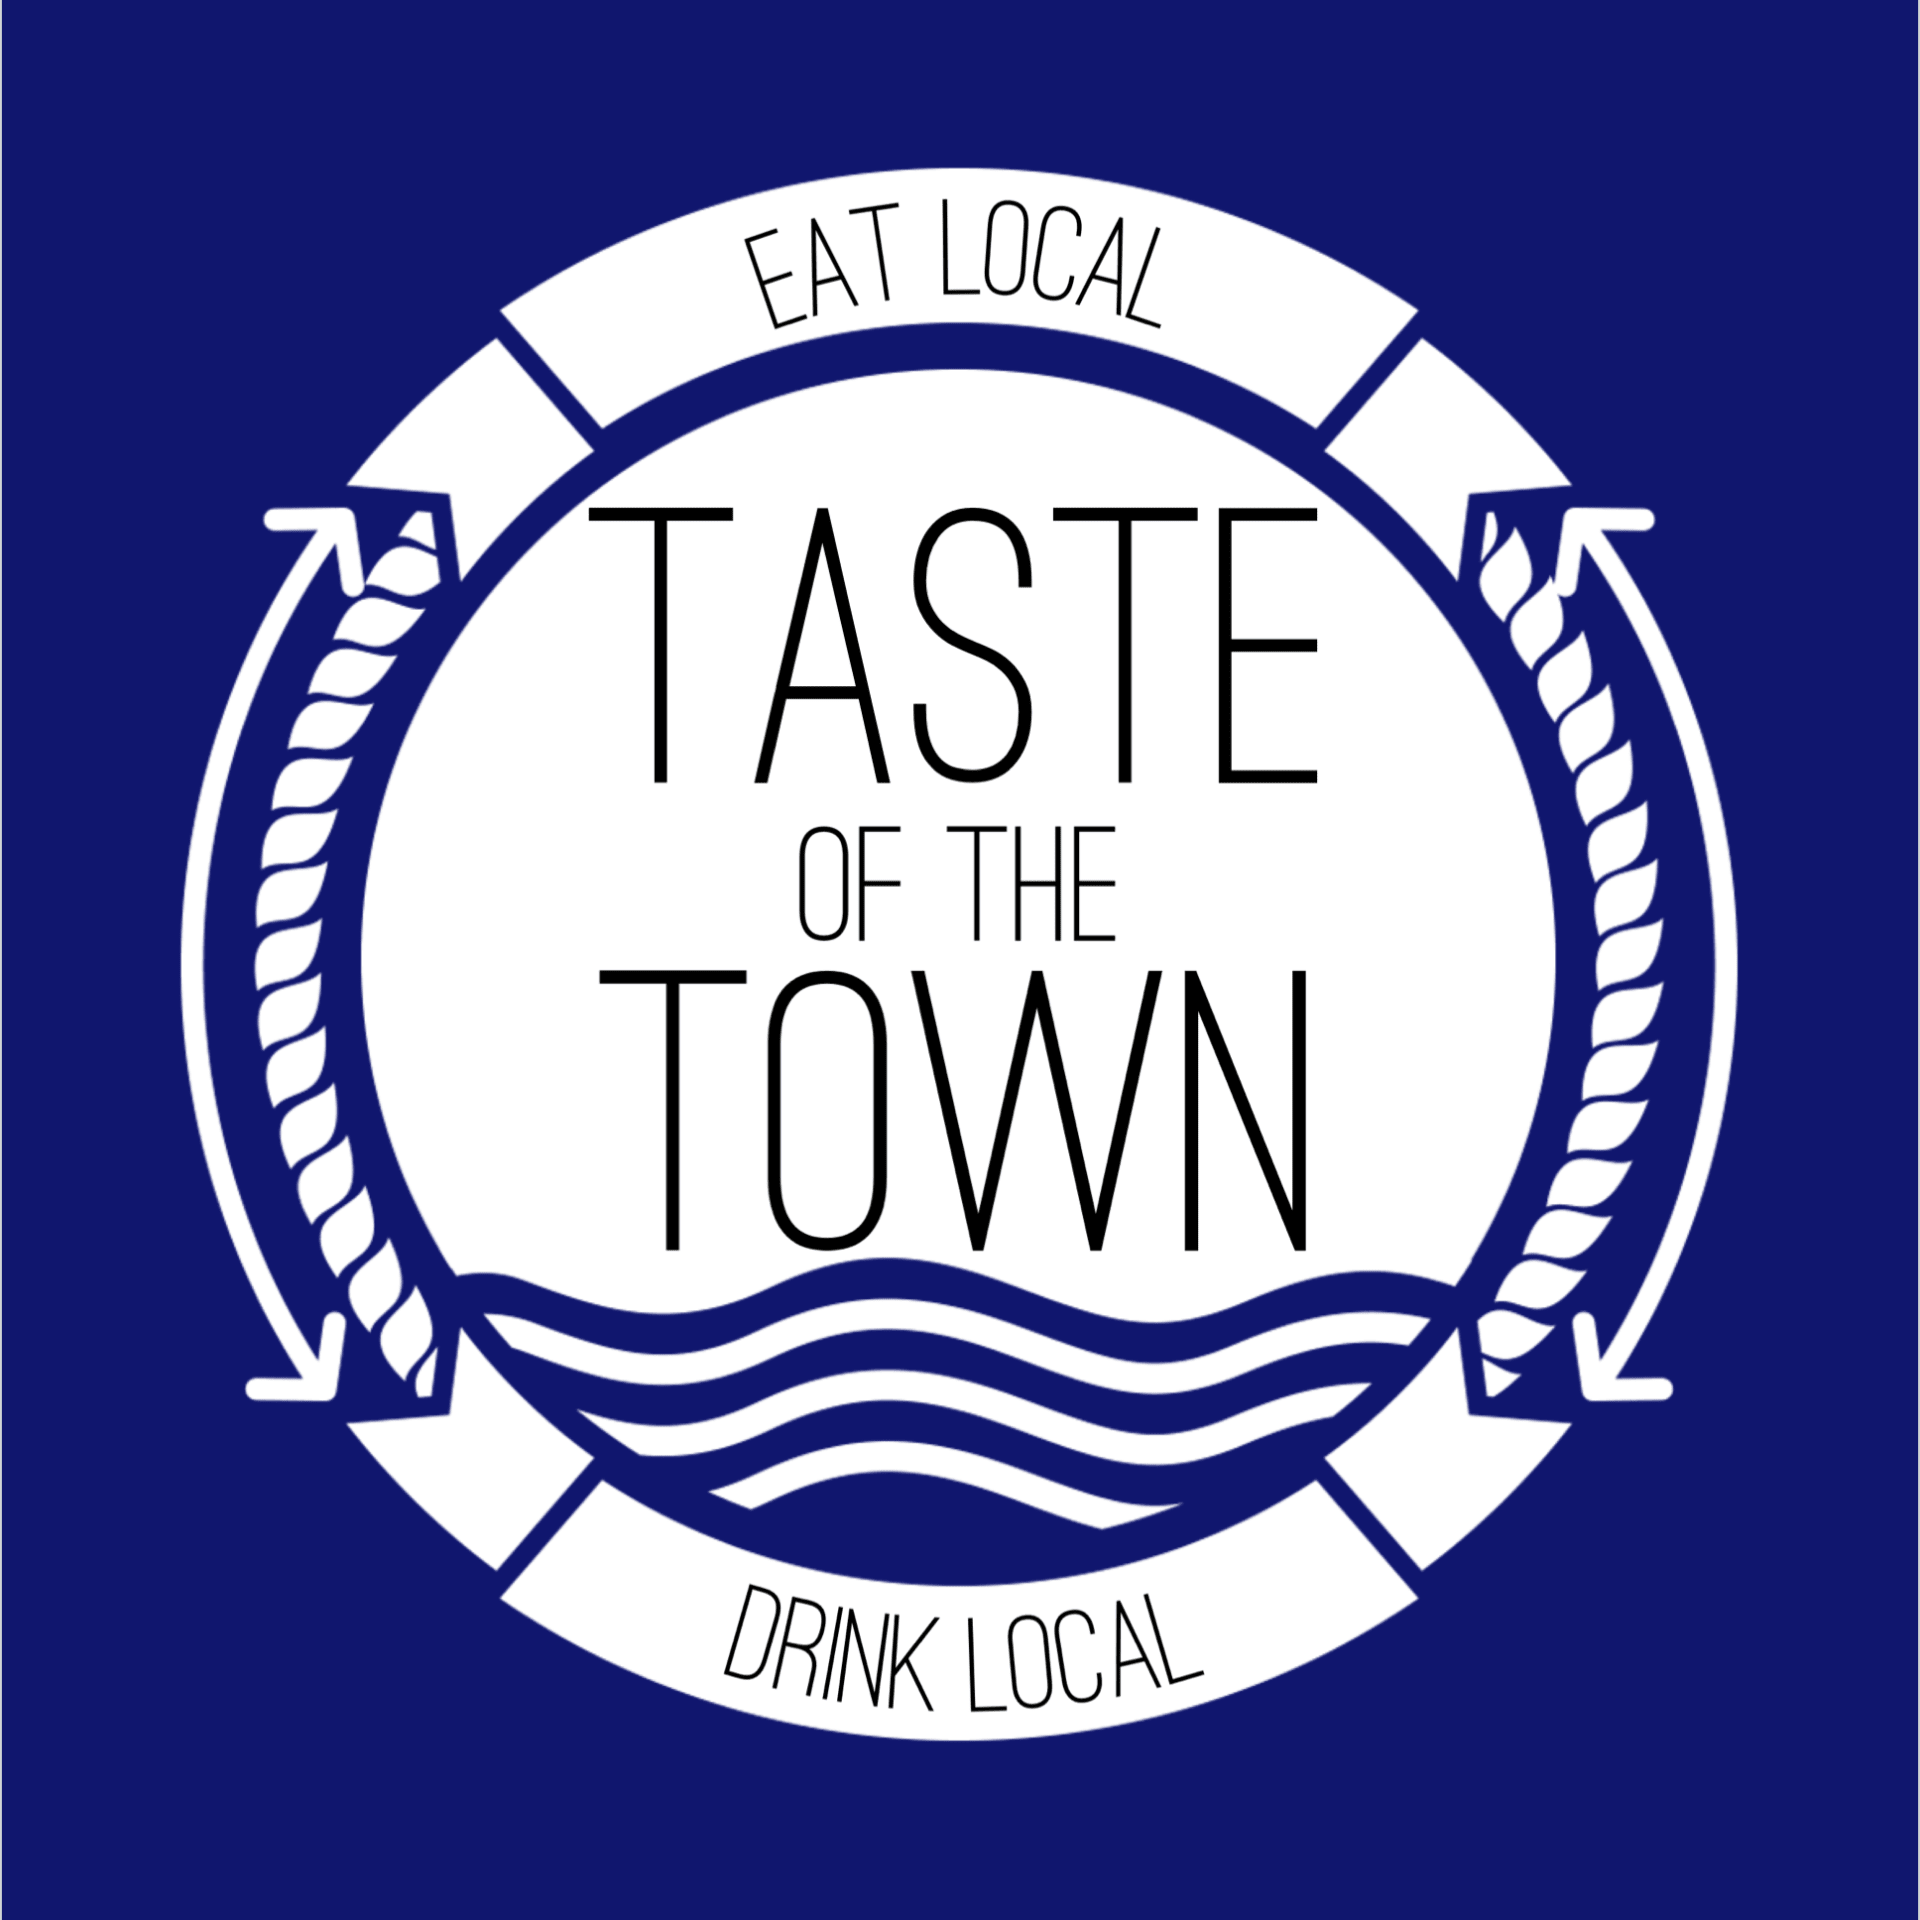 Get your TASTE OF THE TOWN tickets now! Friday, November 2 at Corinthian Yacht Club!